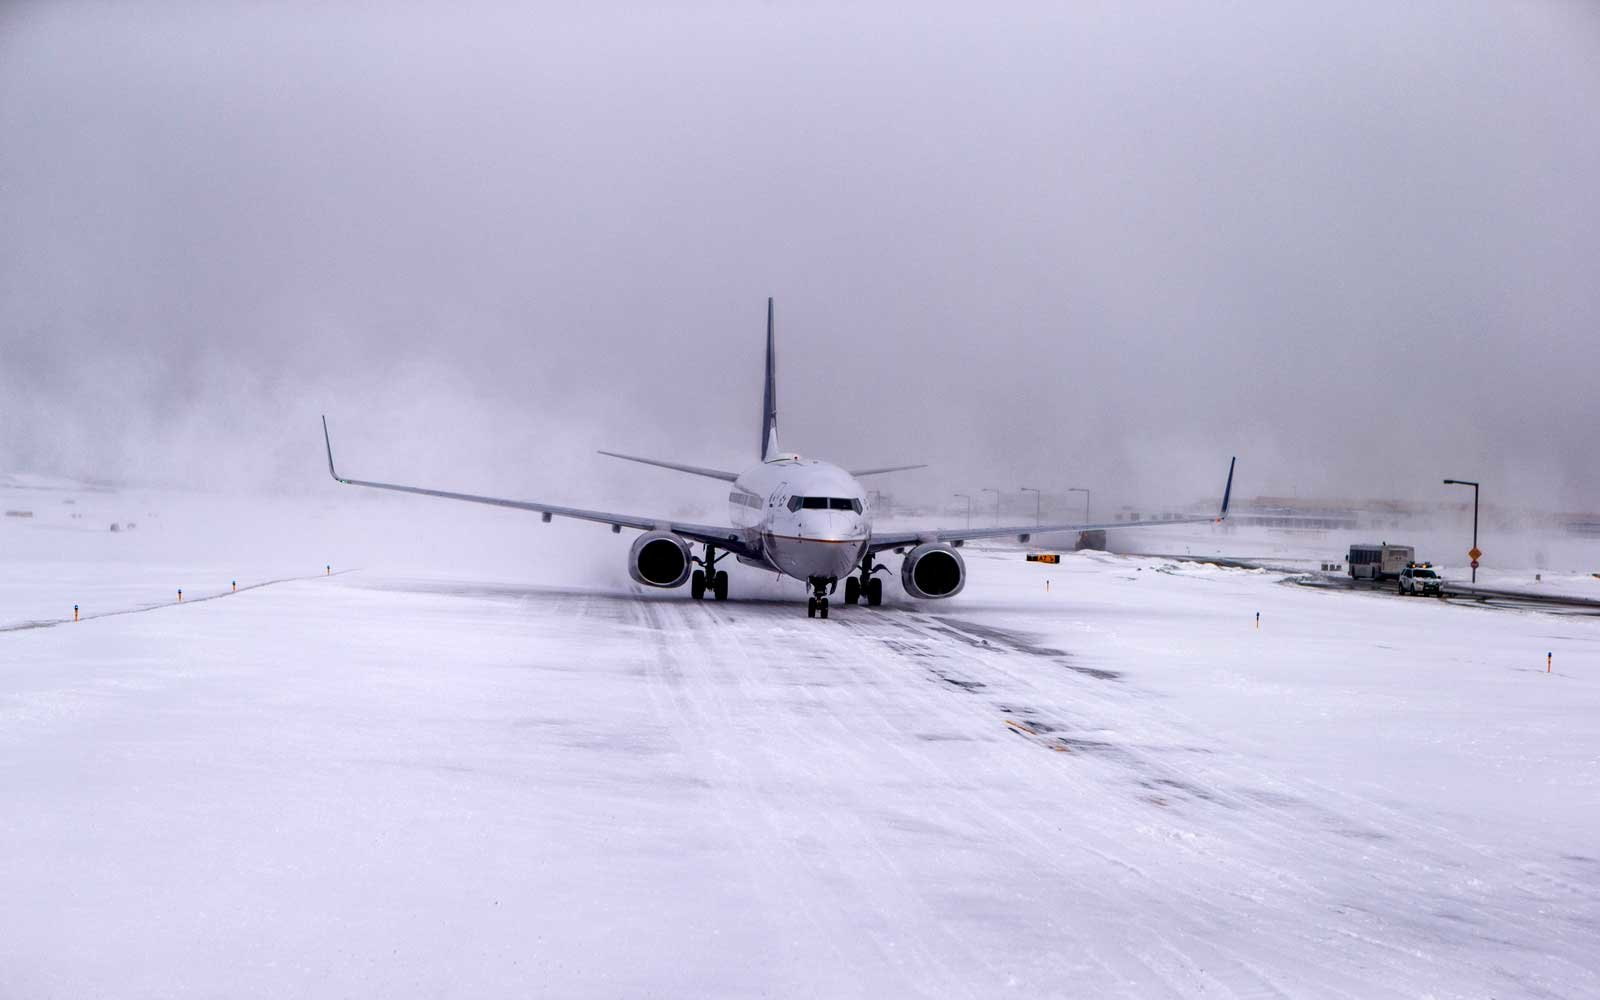 Airlines Offering Travel Vouchers For Winter Storm Stella